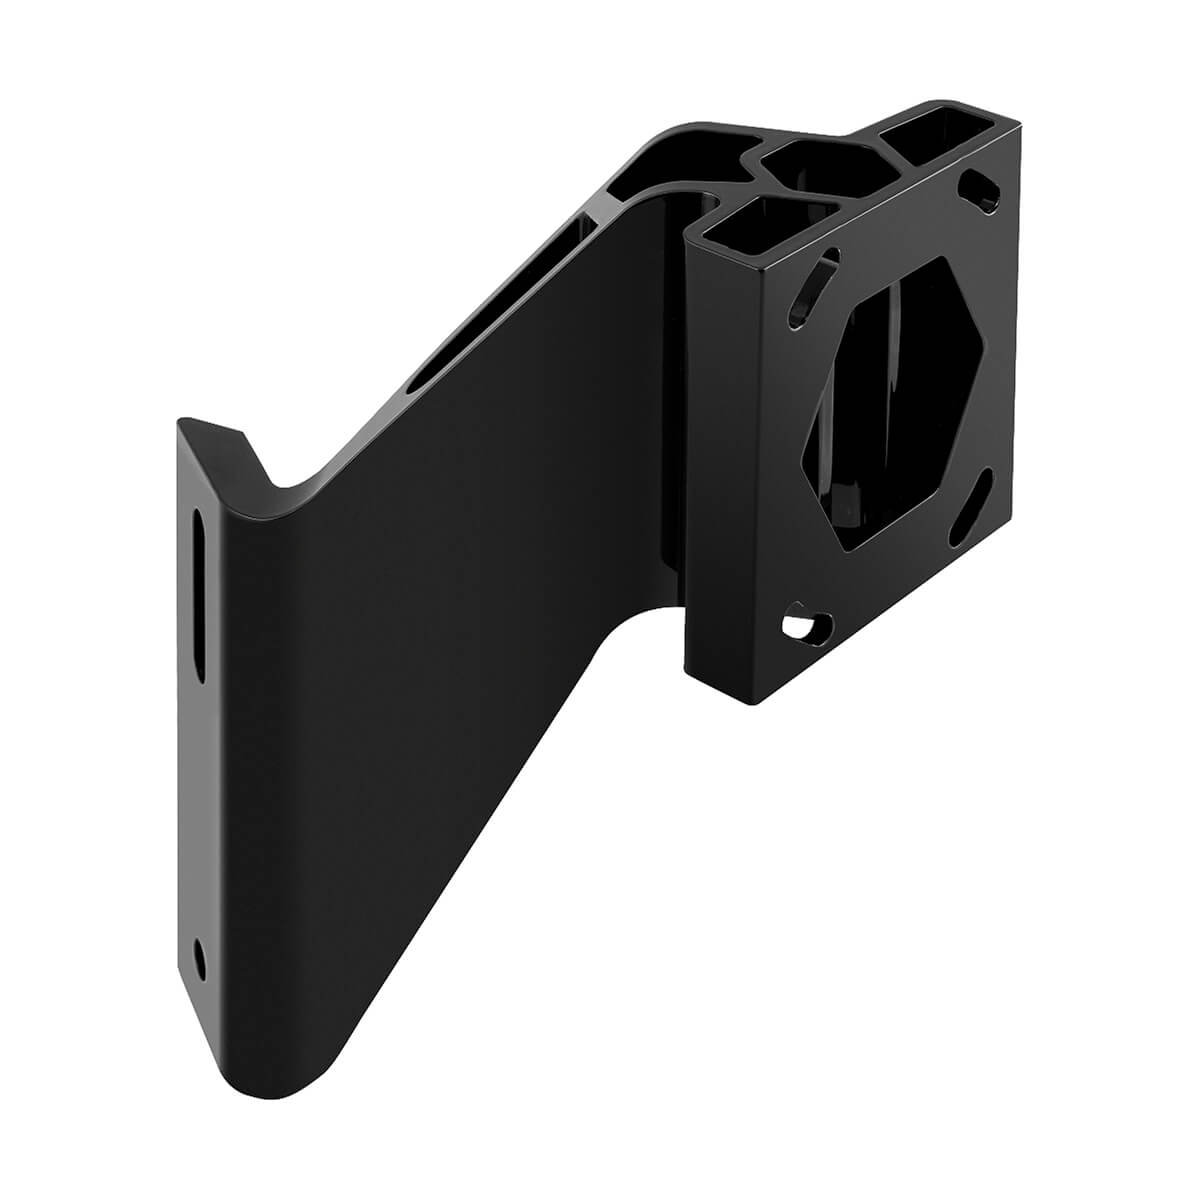 Raptor Jack Plate Adapter Bracket - Starboard, 6